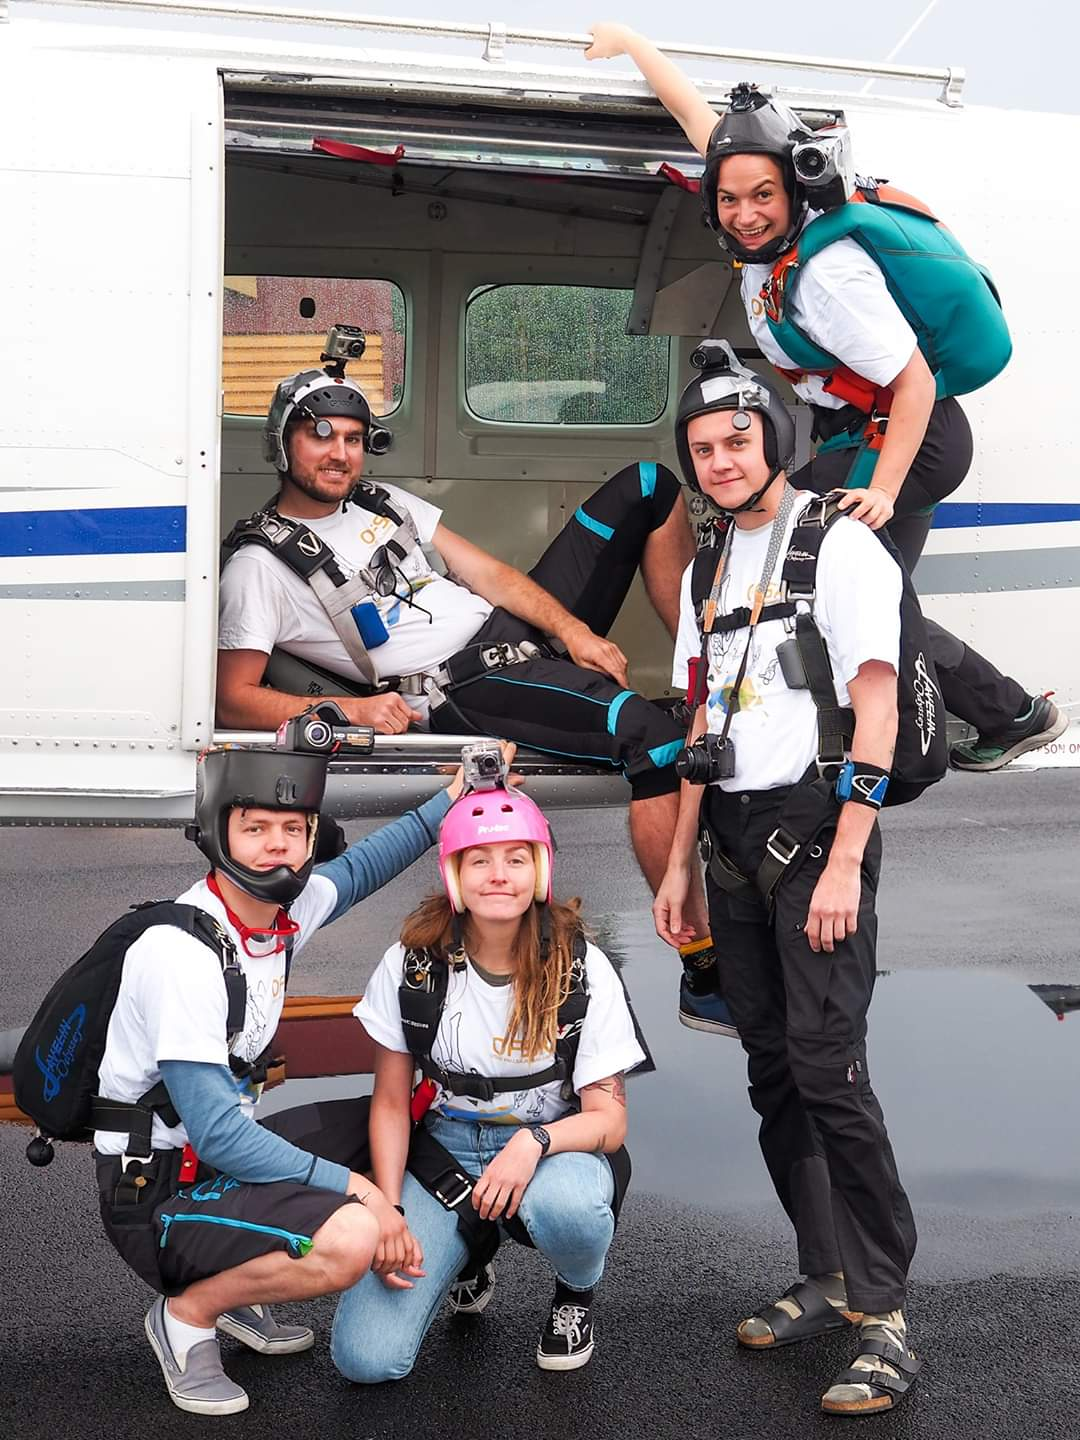 Skydive instructor job in Norway